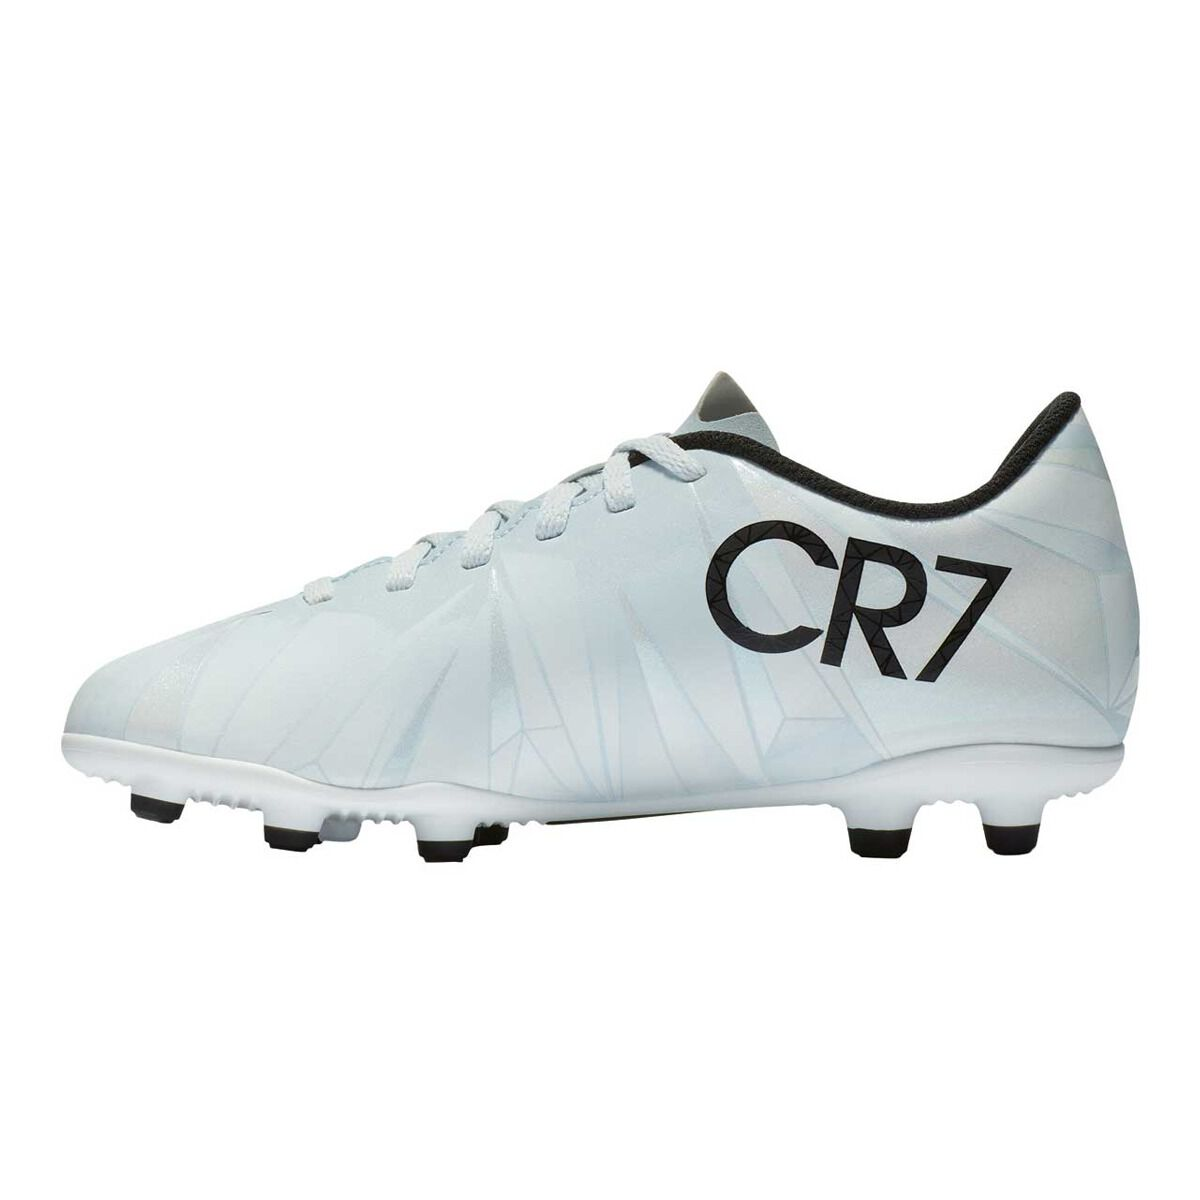 03f19050f Buy 2 OFF ANY nike cr7 childrens CASE AND GET 70% OFF!